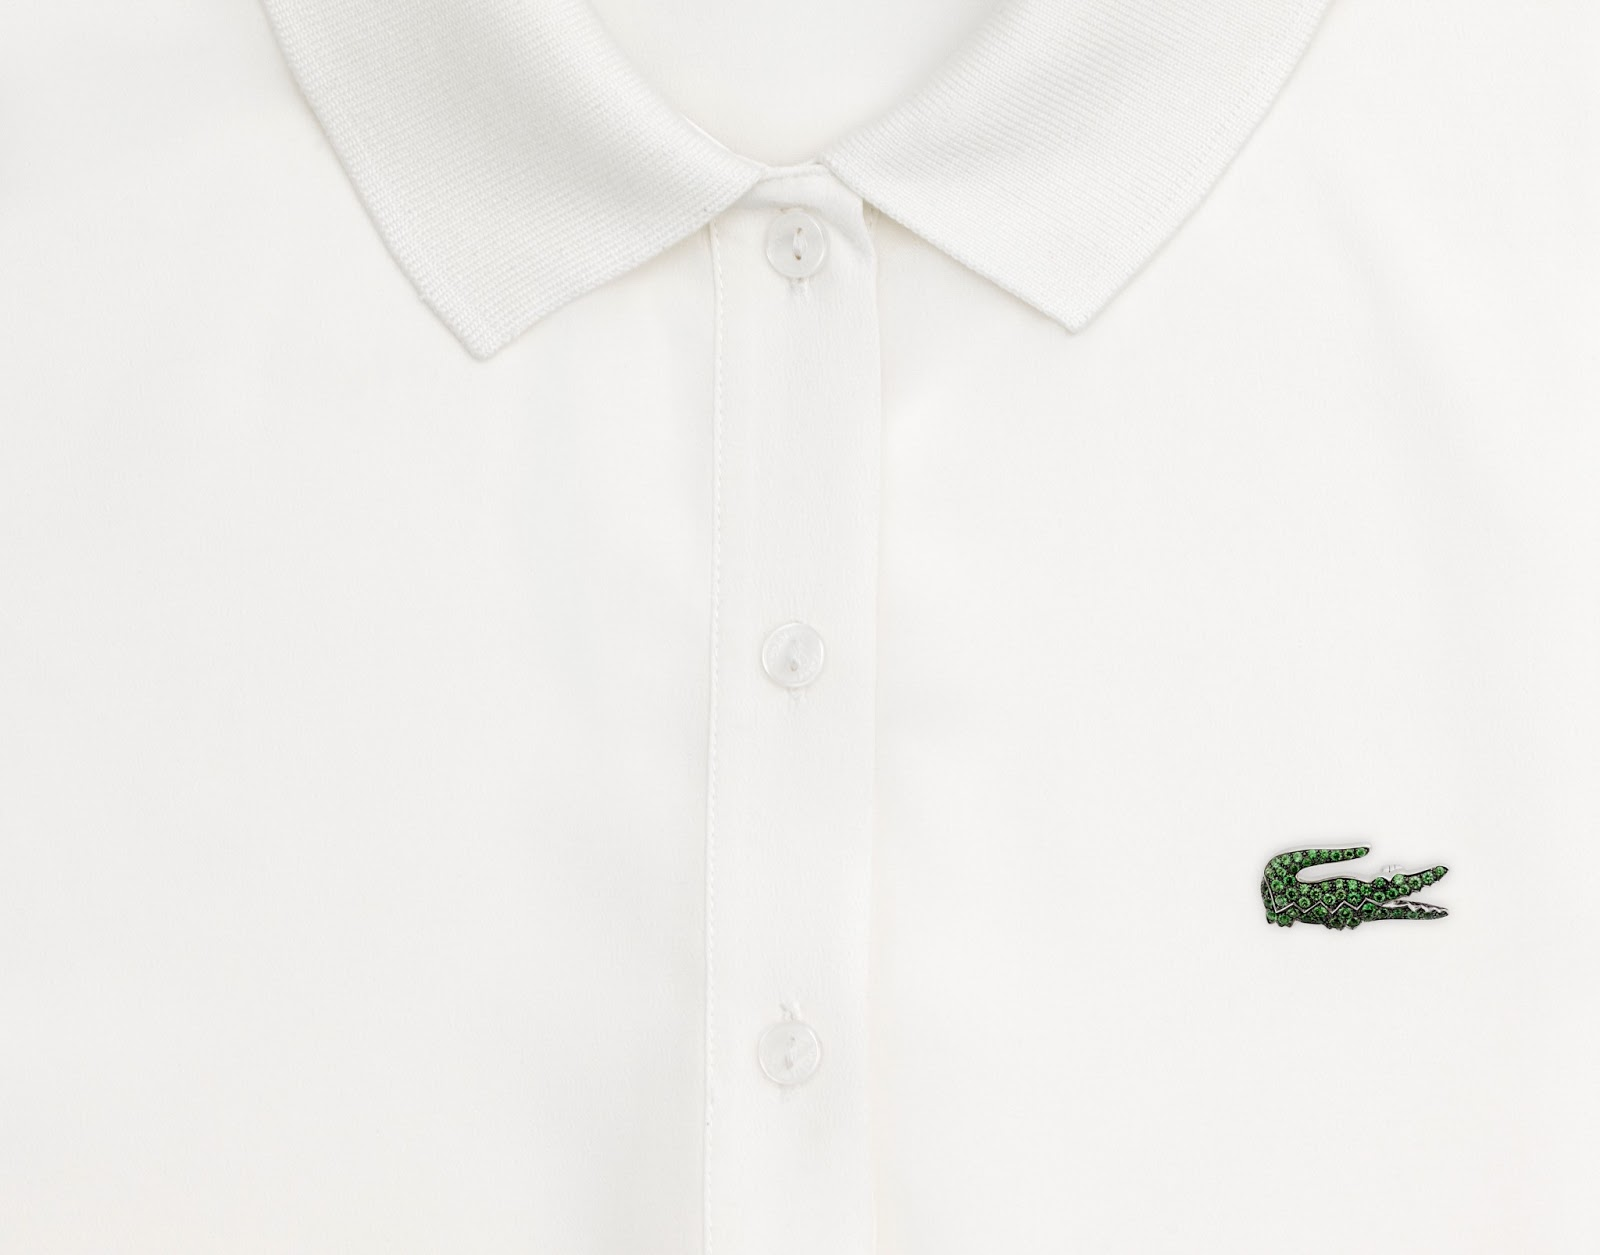 Lacoste-Maisons-Francaises-80th-Anniversary-Collection-Boucheron-Brooch-Green-Polo.jpg